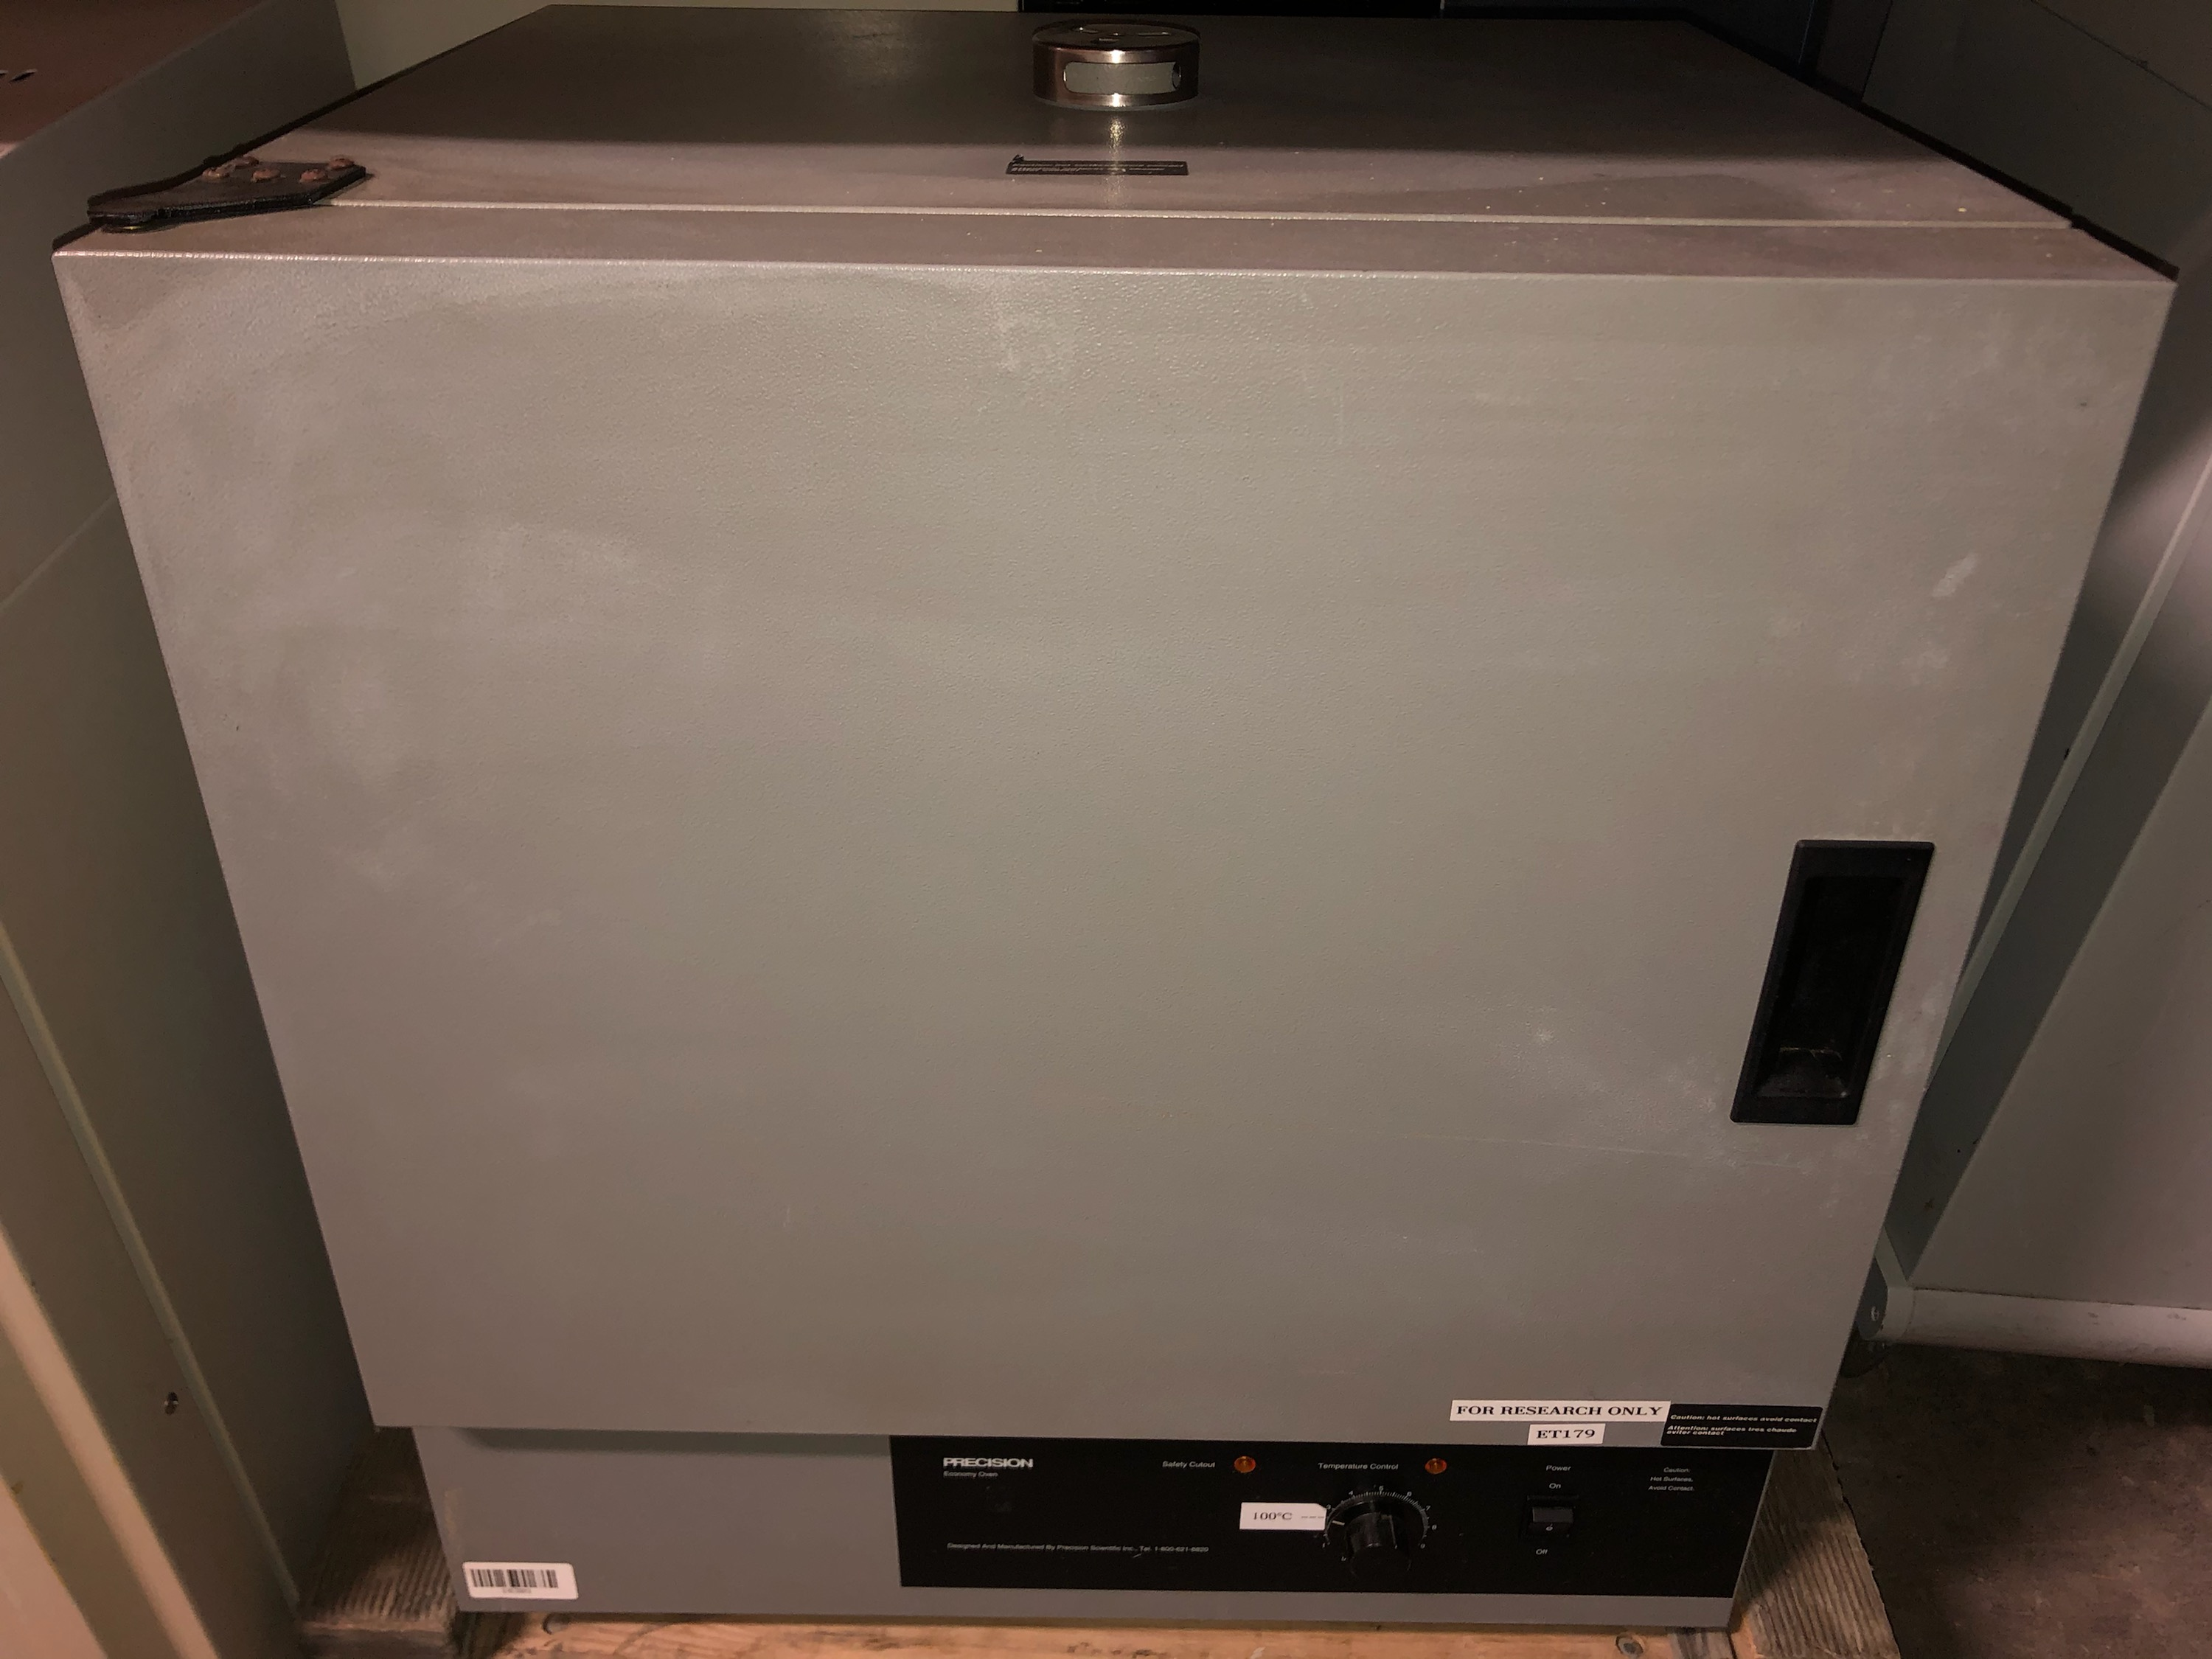 Precision 25EM Mechanical Convection Oven